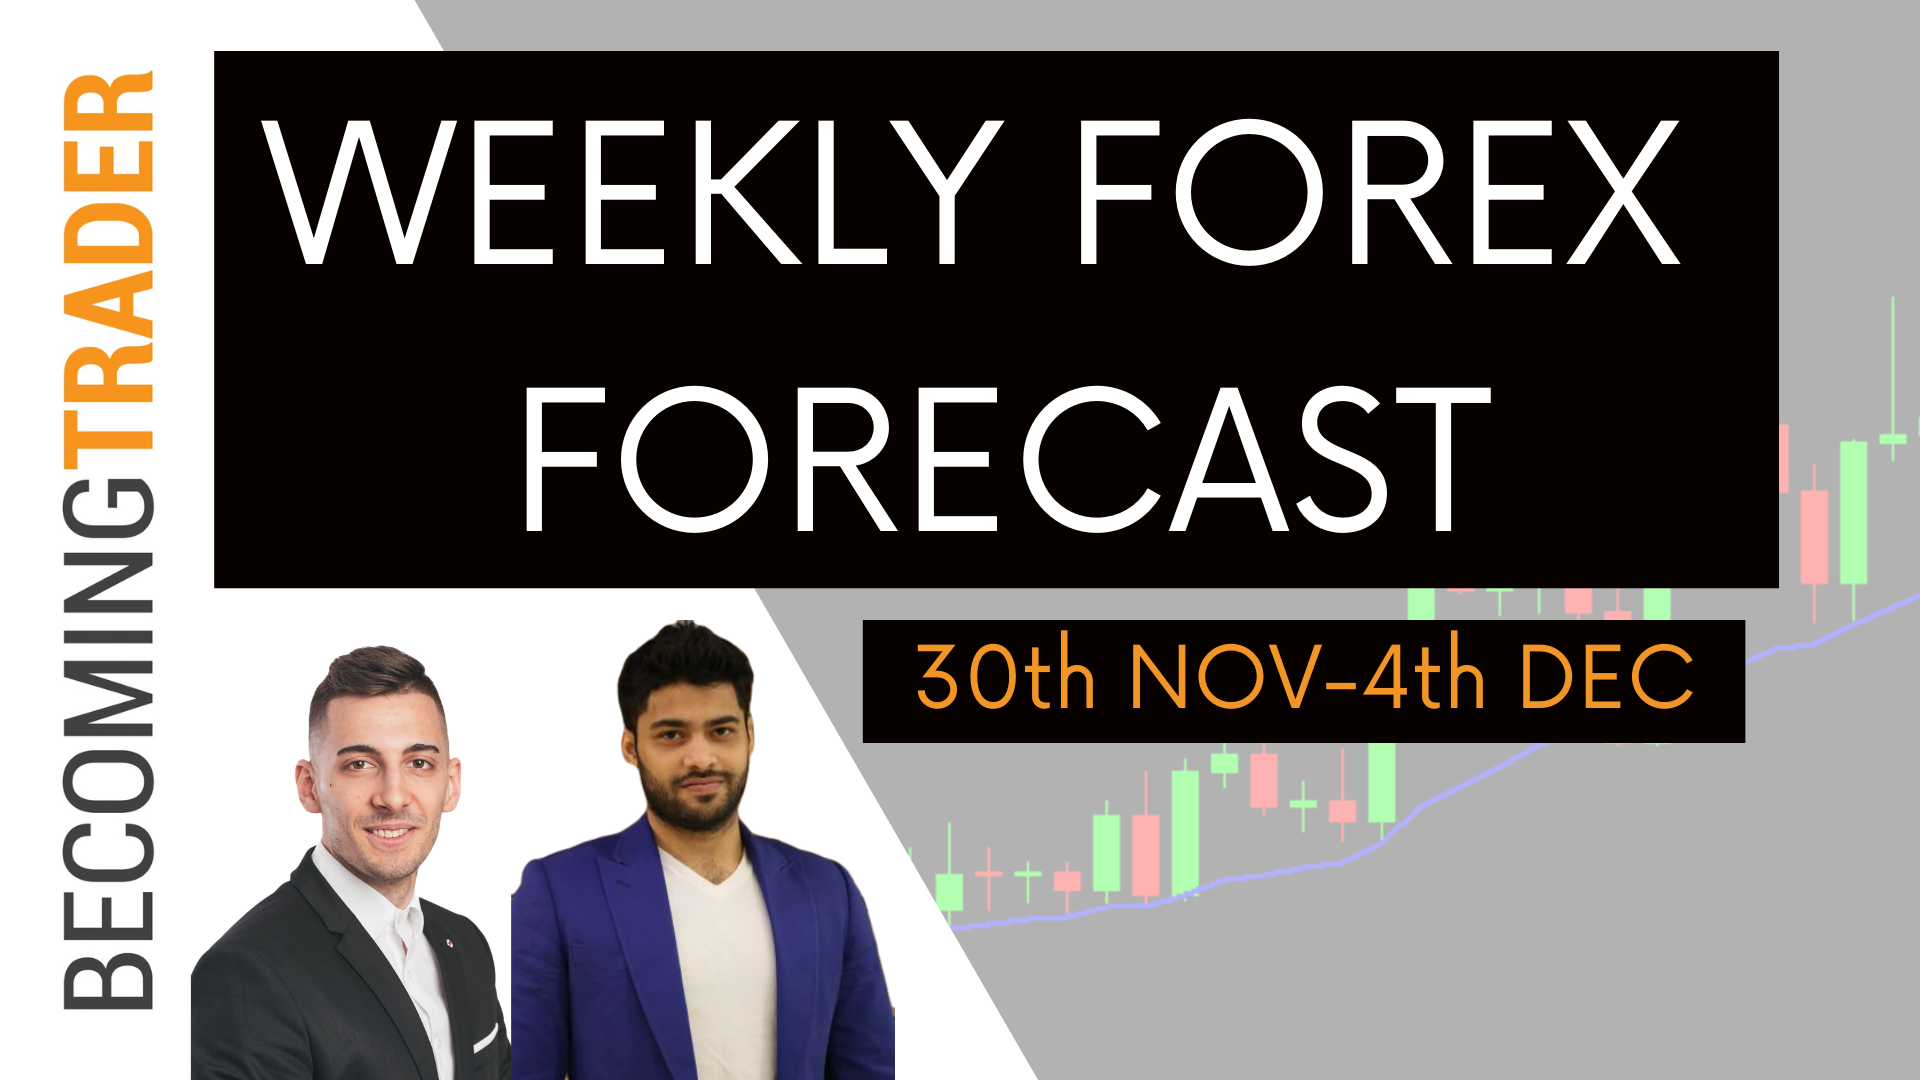 Weekly Forex Forecast 30th November to 4th December 2020